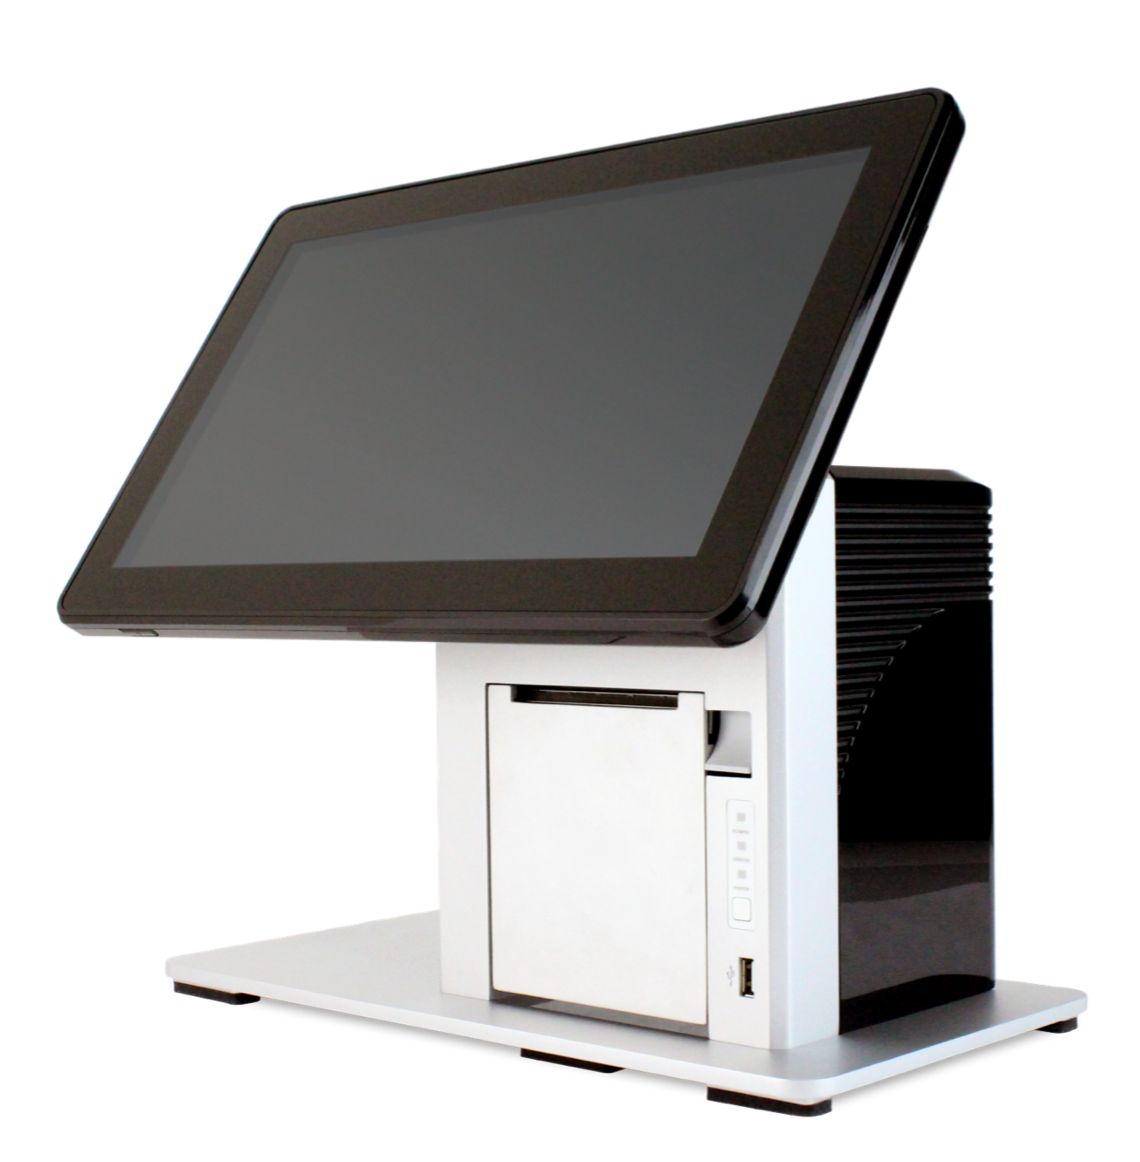 All-In-One POS Terminal (Pro)